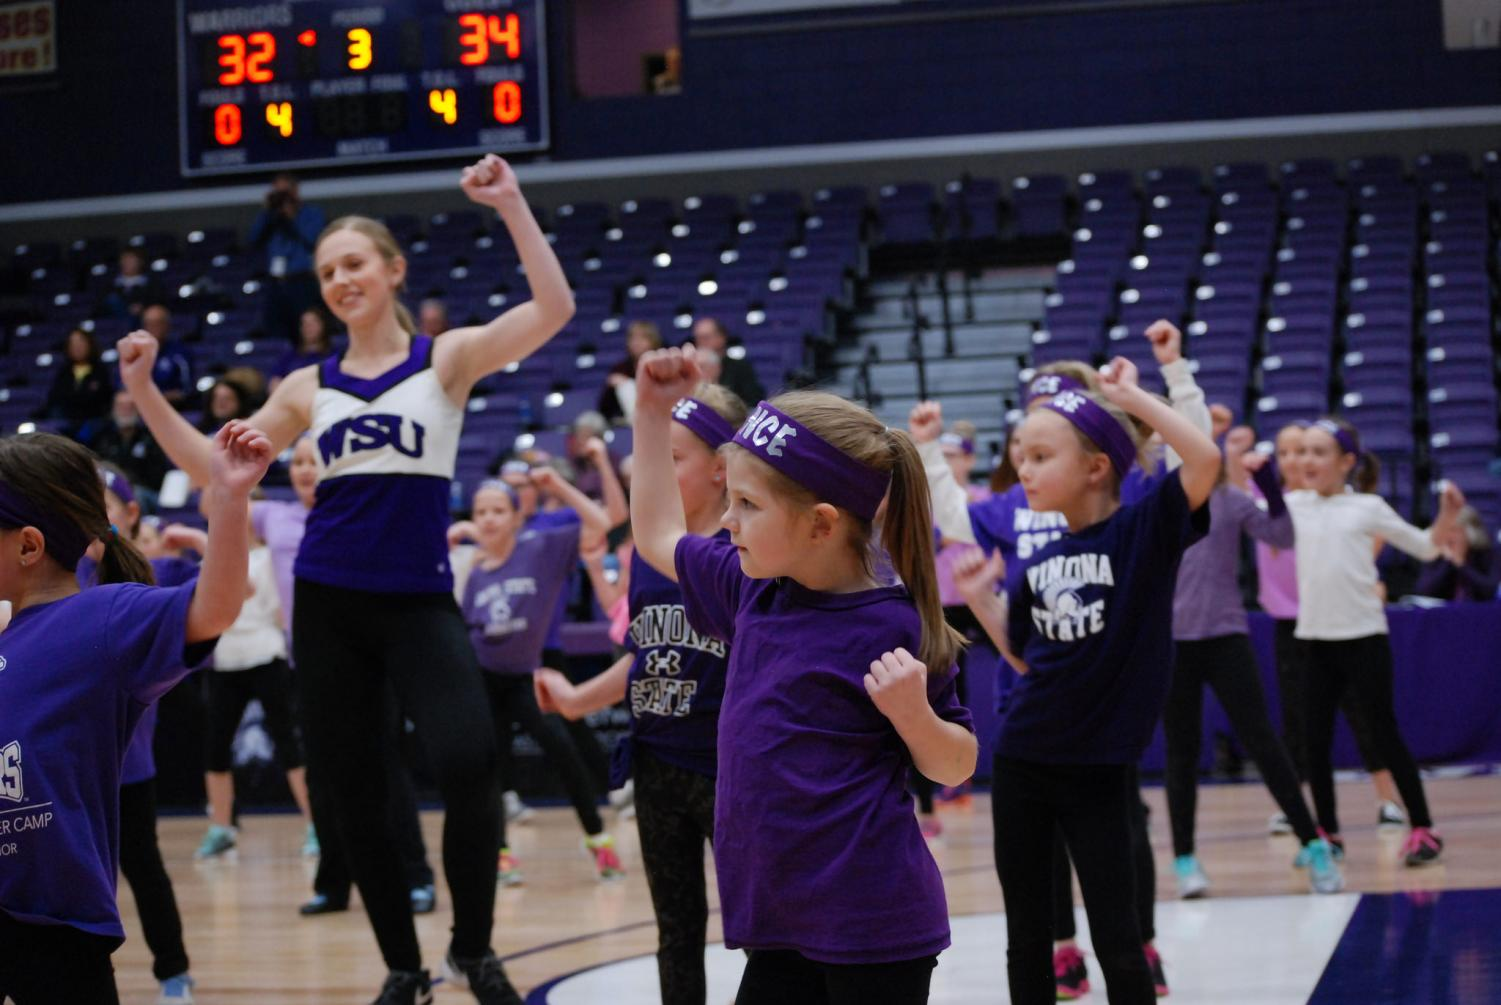 Members of the kid's dance clinic perform alongside the Winona State University Dance Team during halftime of the Winona State women's basketball game on Saturday, Feb. 3 in McCown Gymnasium.